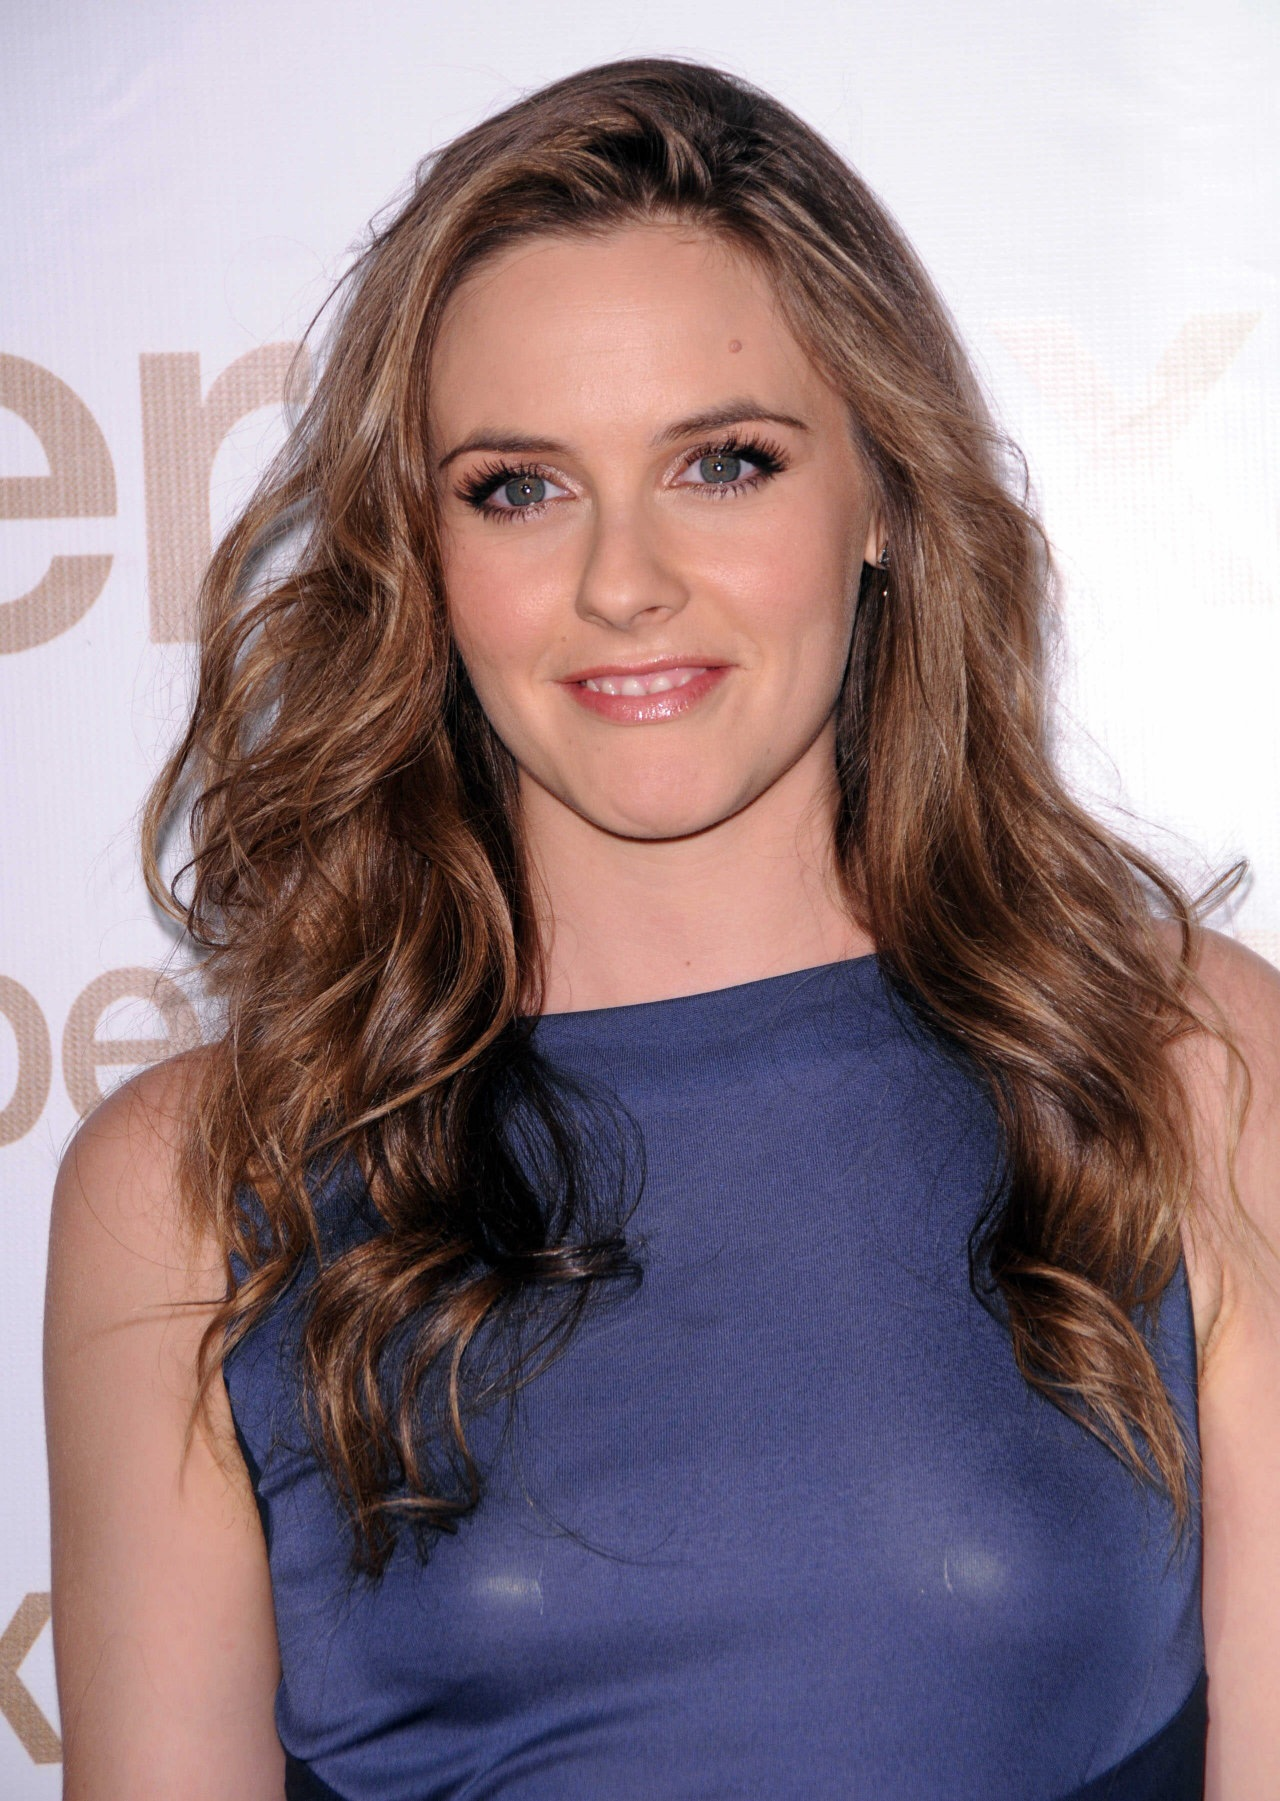 Alicia Silverstone Hairstyles Pictures, Long Hairstyle 2011, Hairstyle 2011, New Long Hairstyle 2011, Celebrity Long Hairstyles 2071